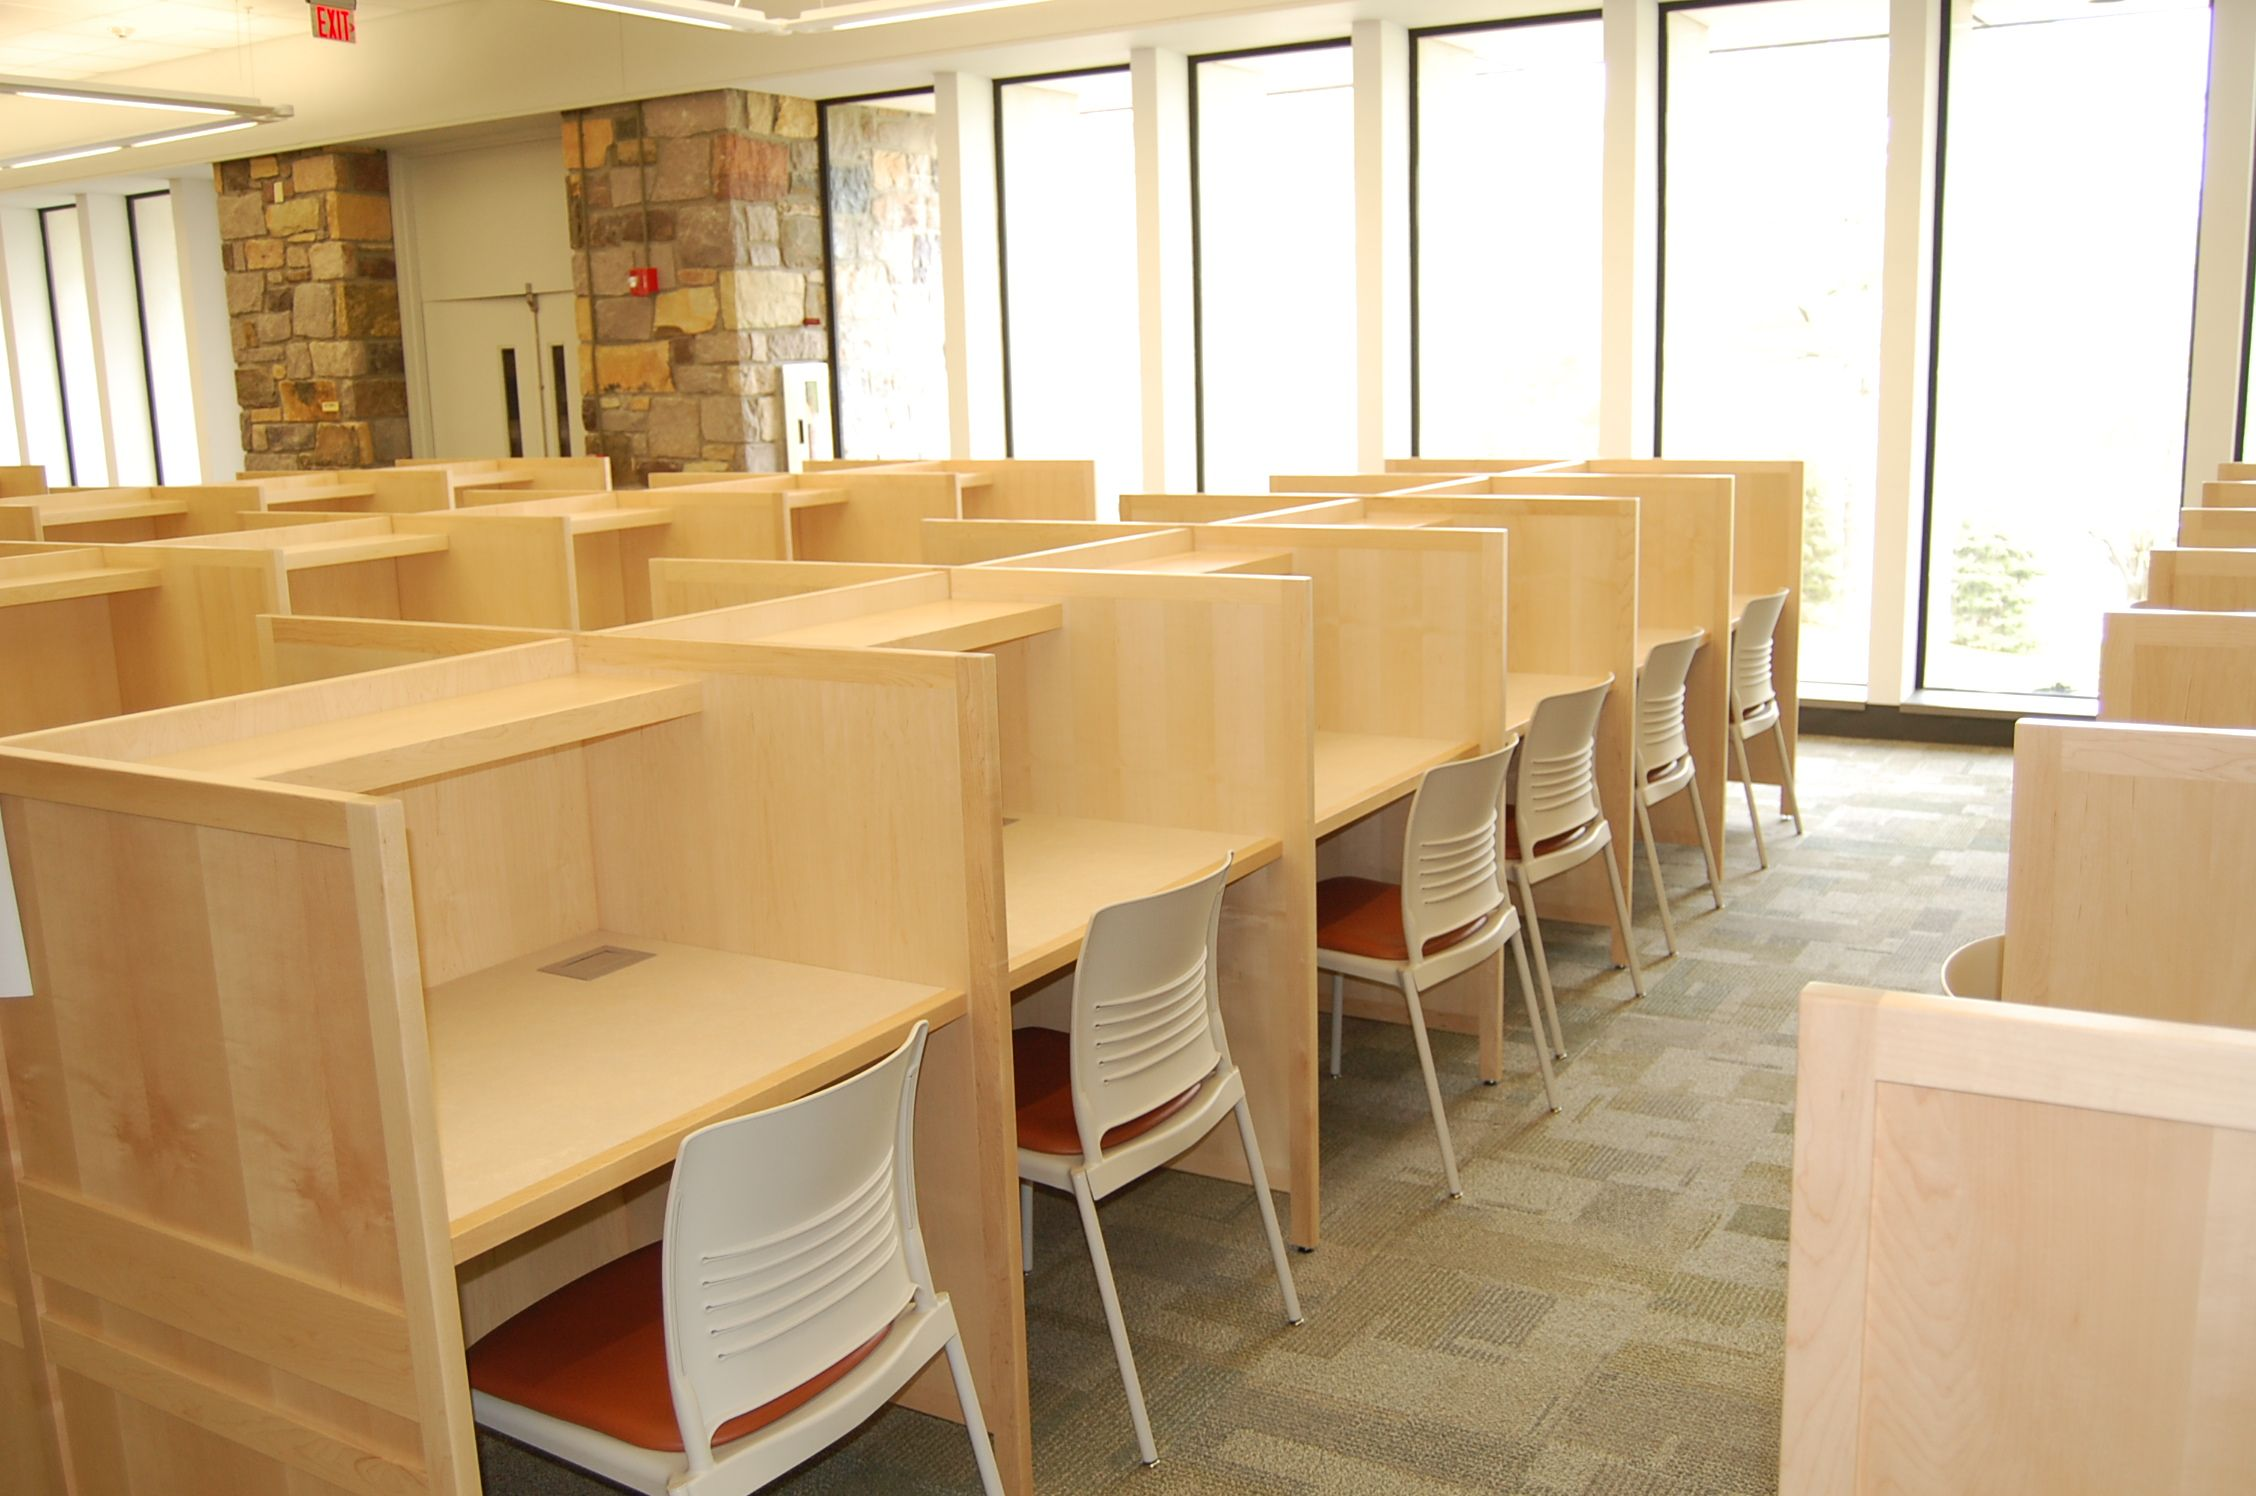 Traditional Study Carrels With Power/USB Ports In Work Surface By AGATI  Furniture Students Still